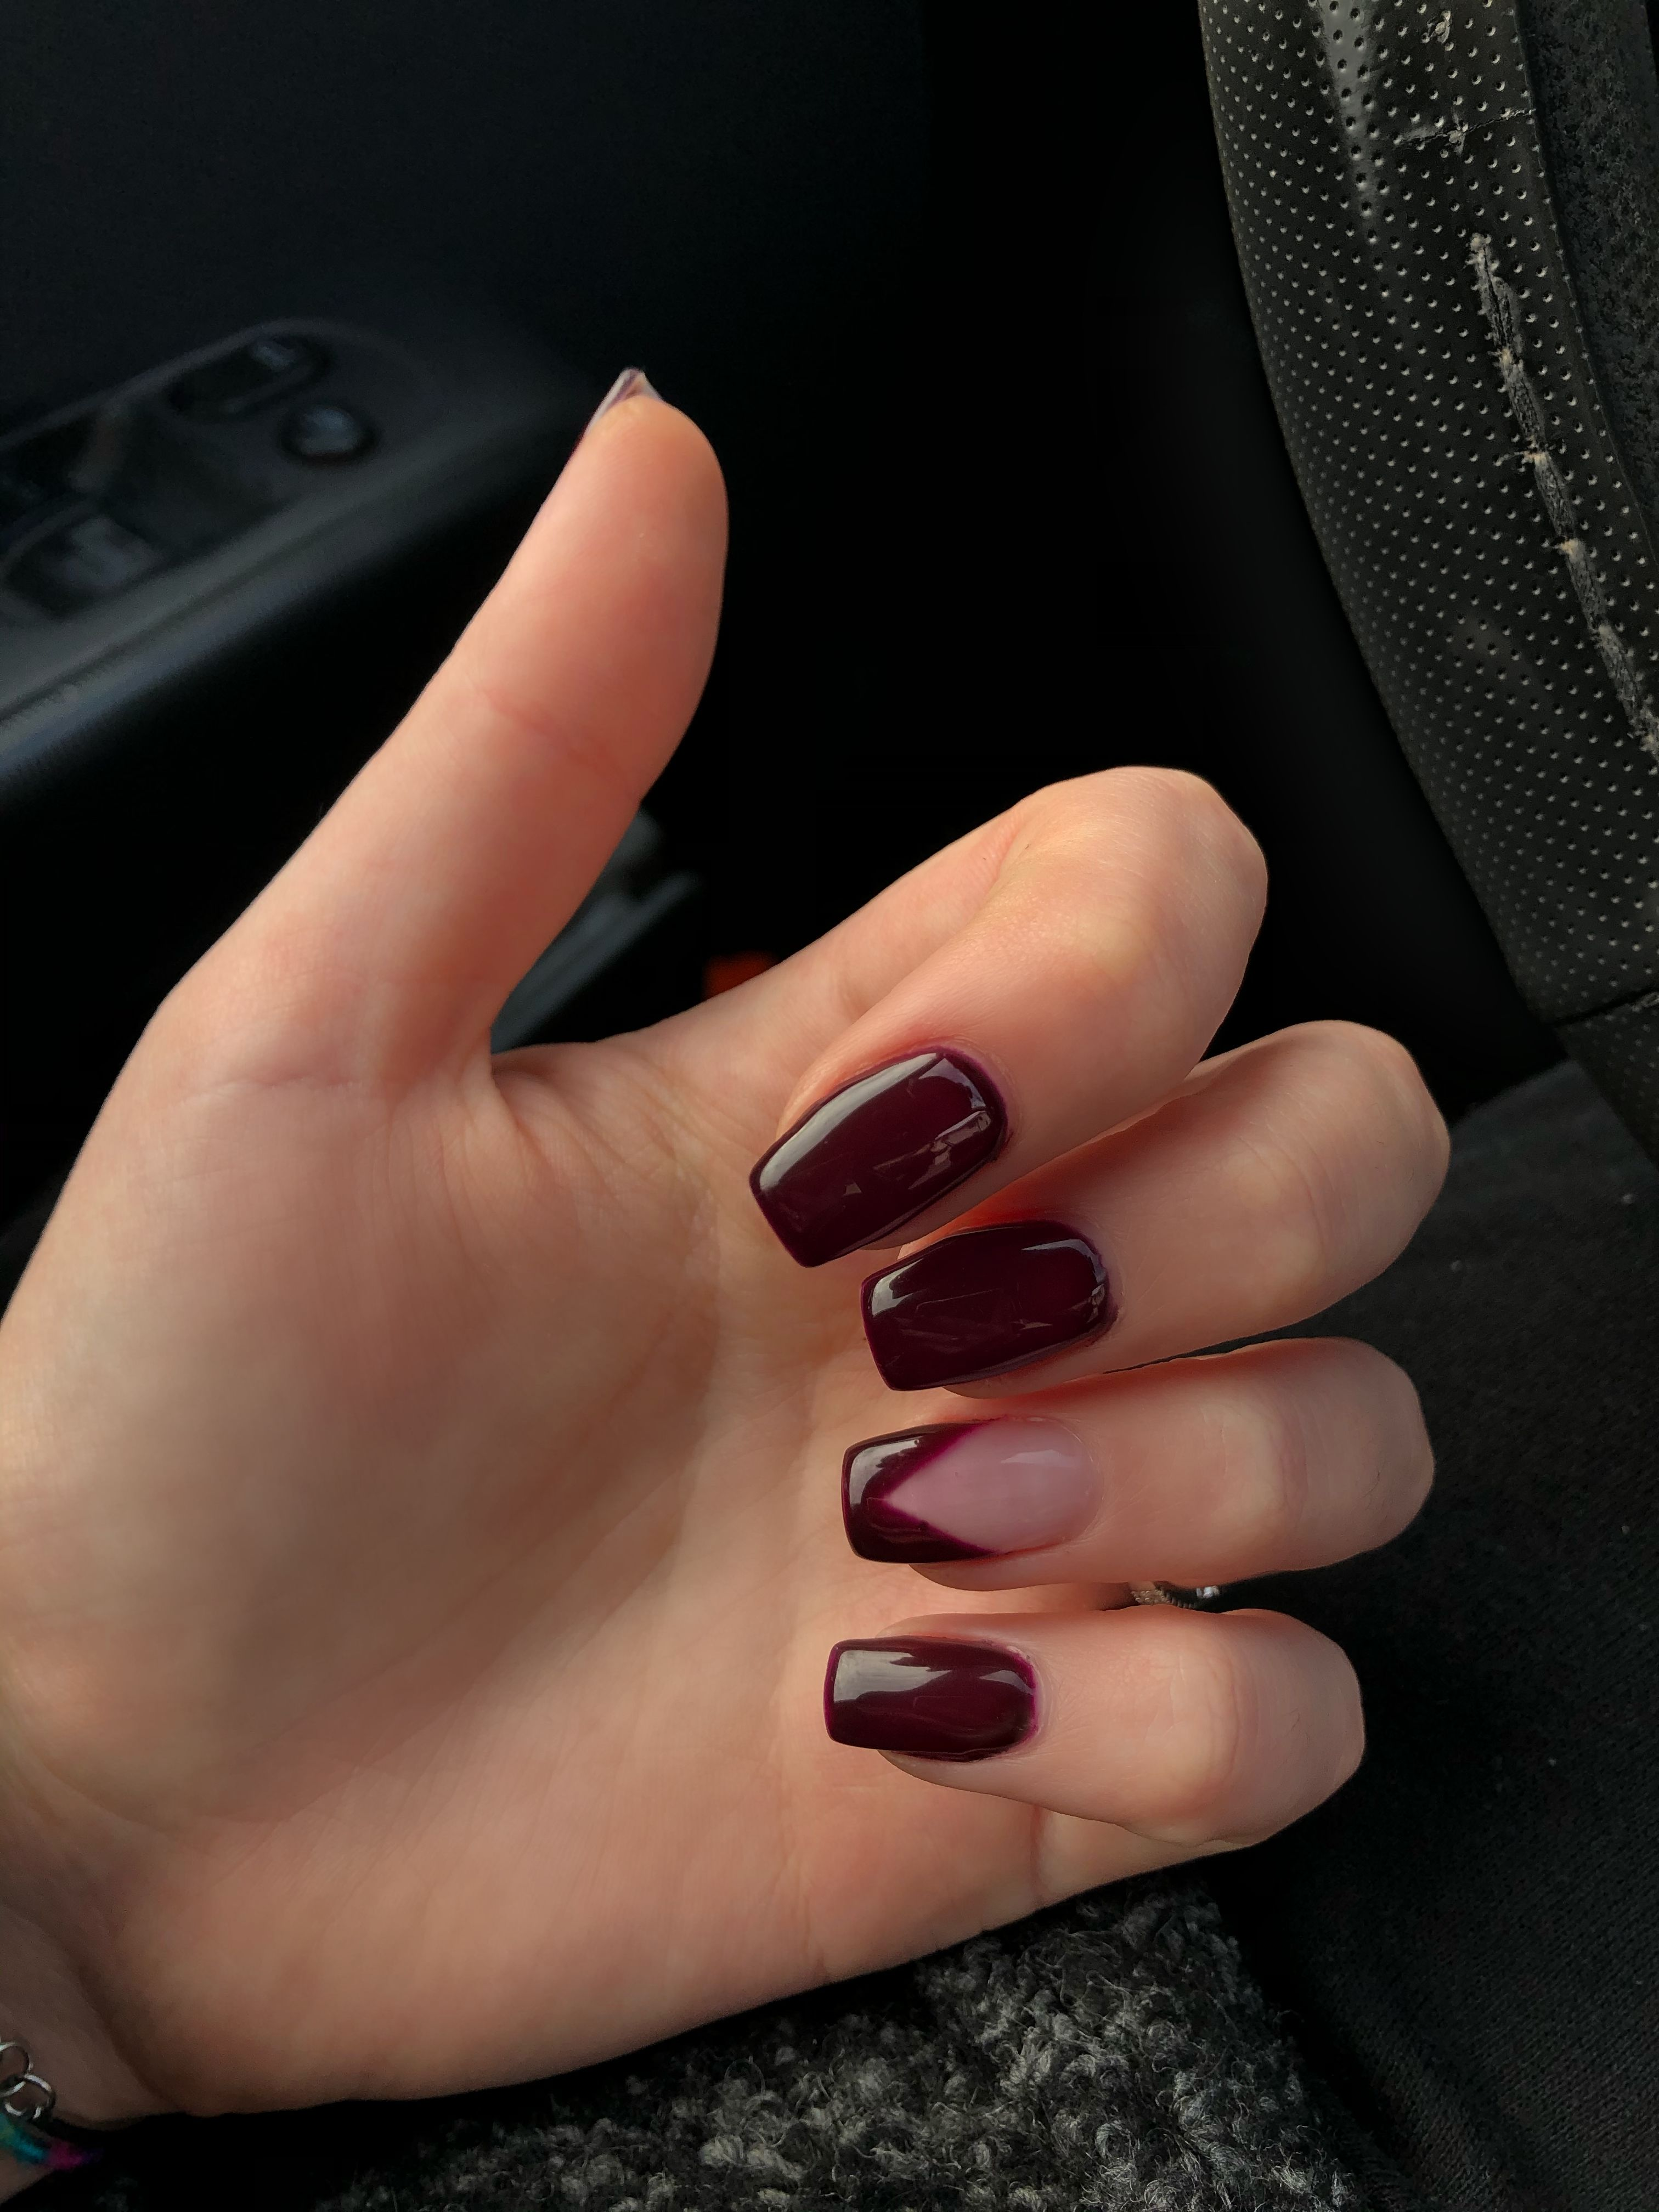 Burgundy Squared Nails In 2020 Short Square Acrylic Nails Burgundy Acrylic Nails Maroon Acrylic Nails